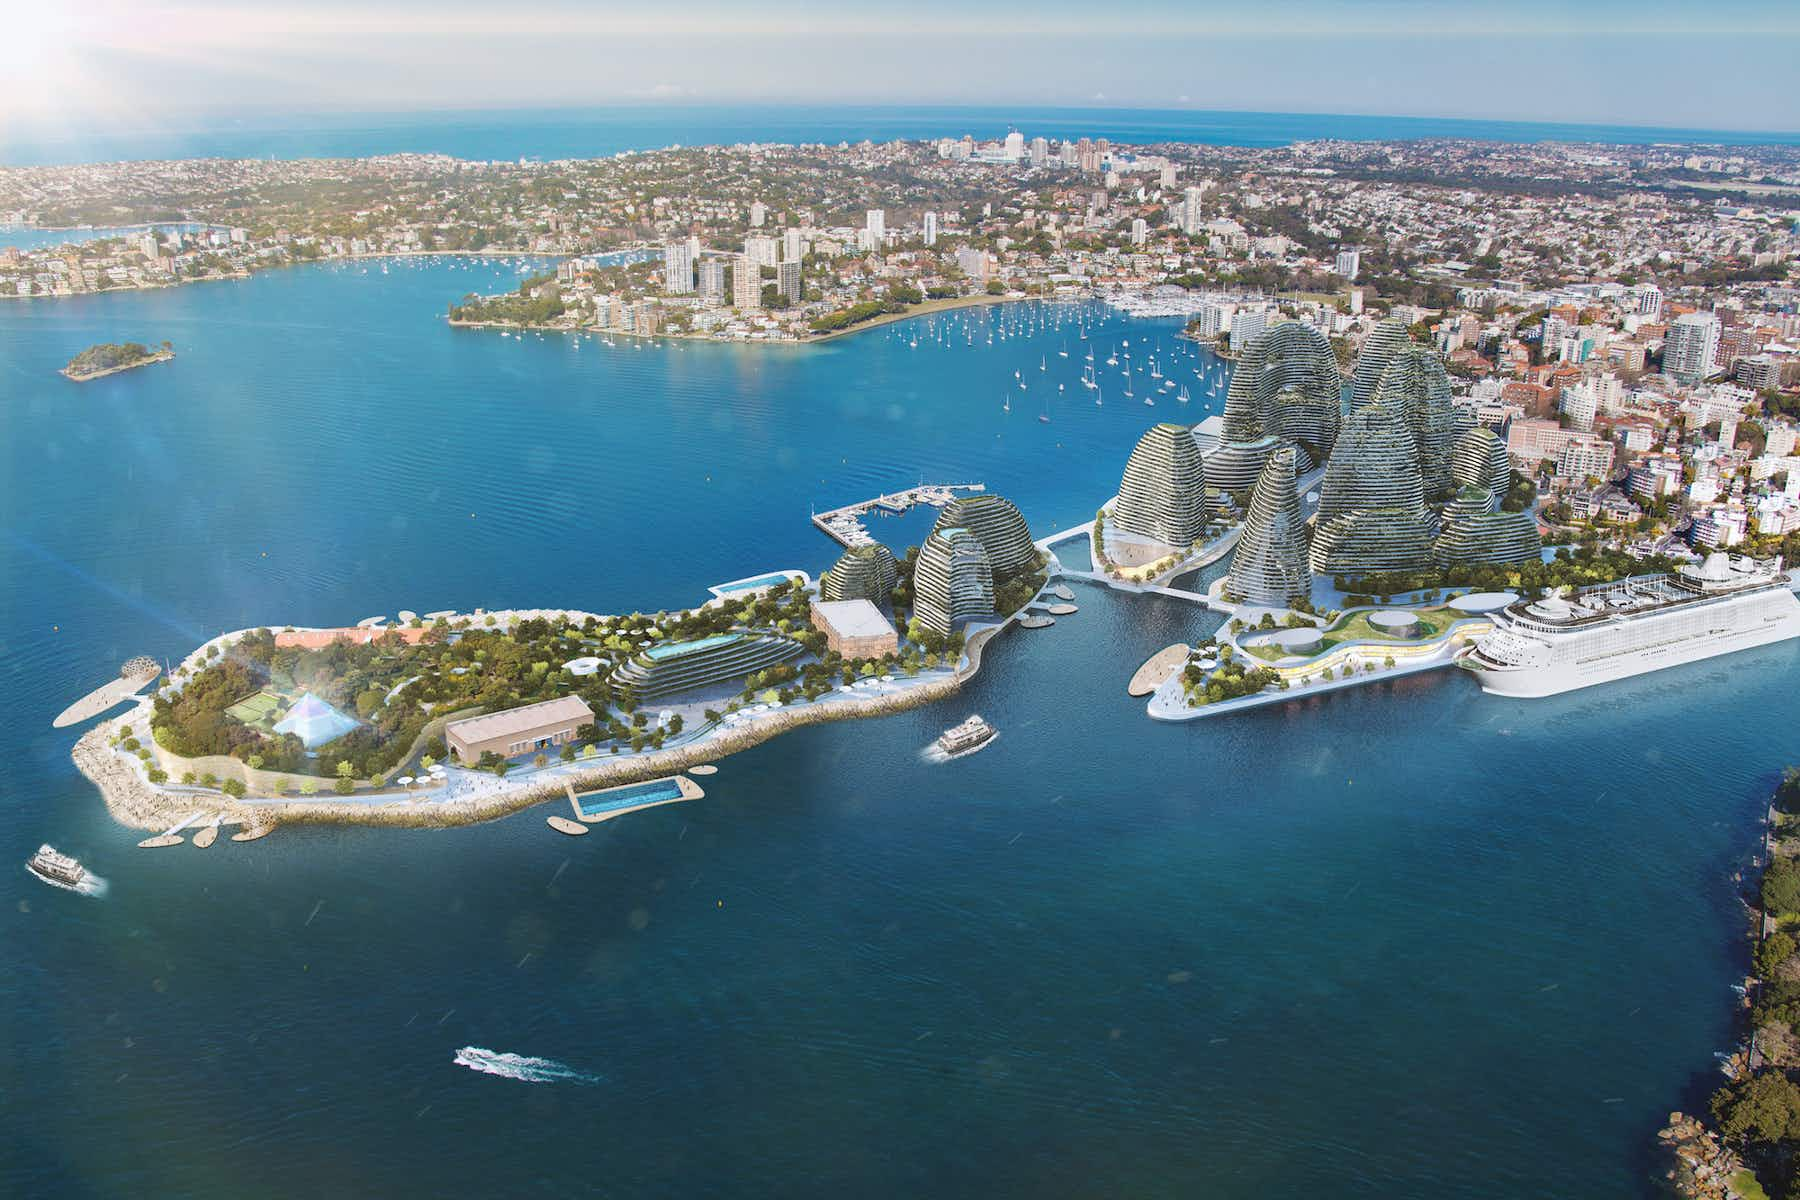 Sydney's Garden Island could be transformed into a cultural district